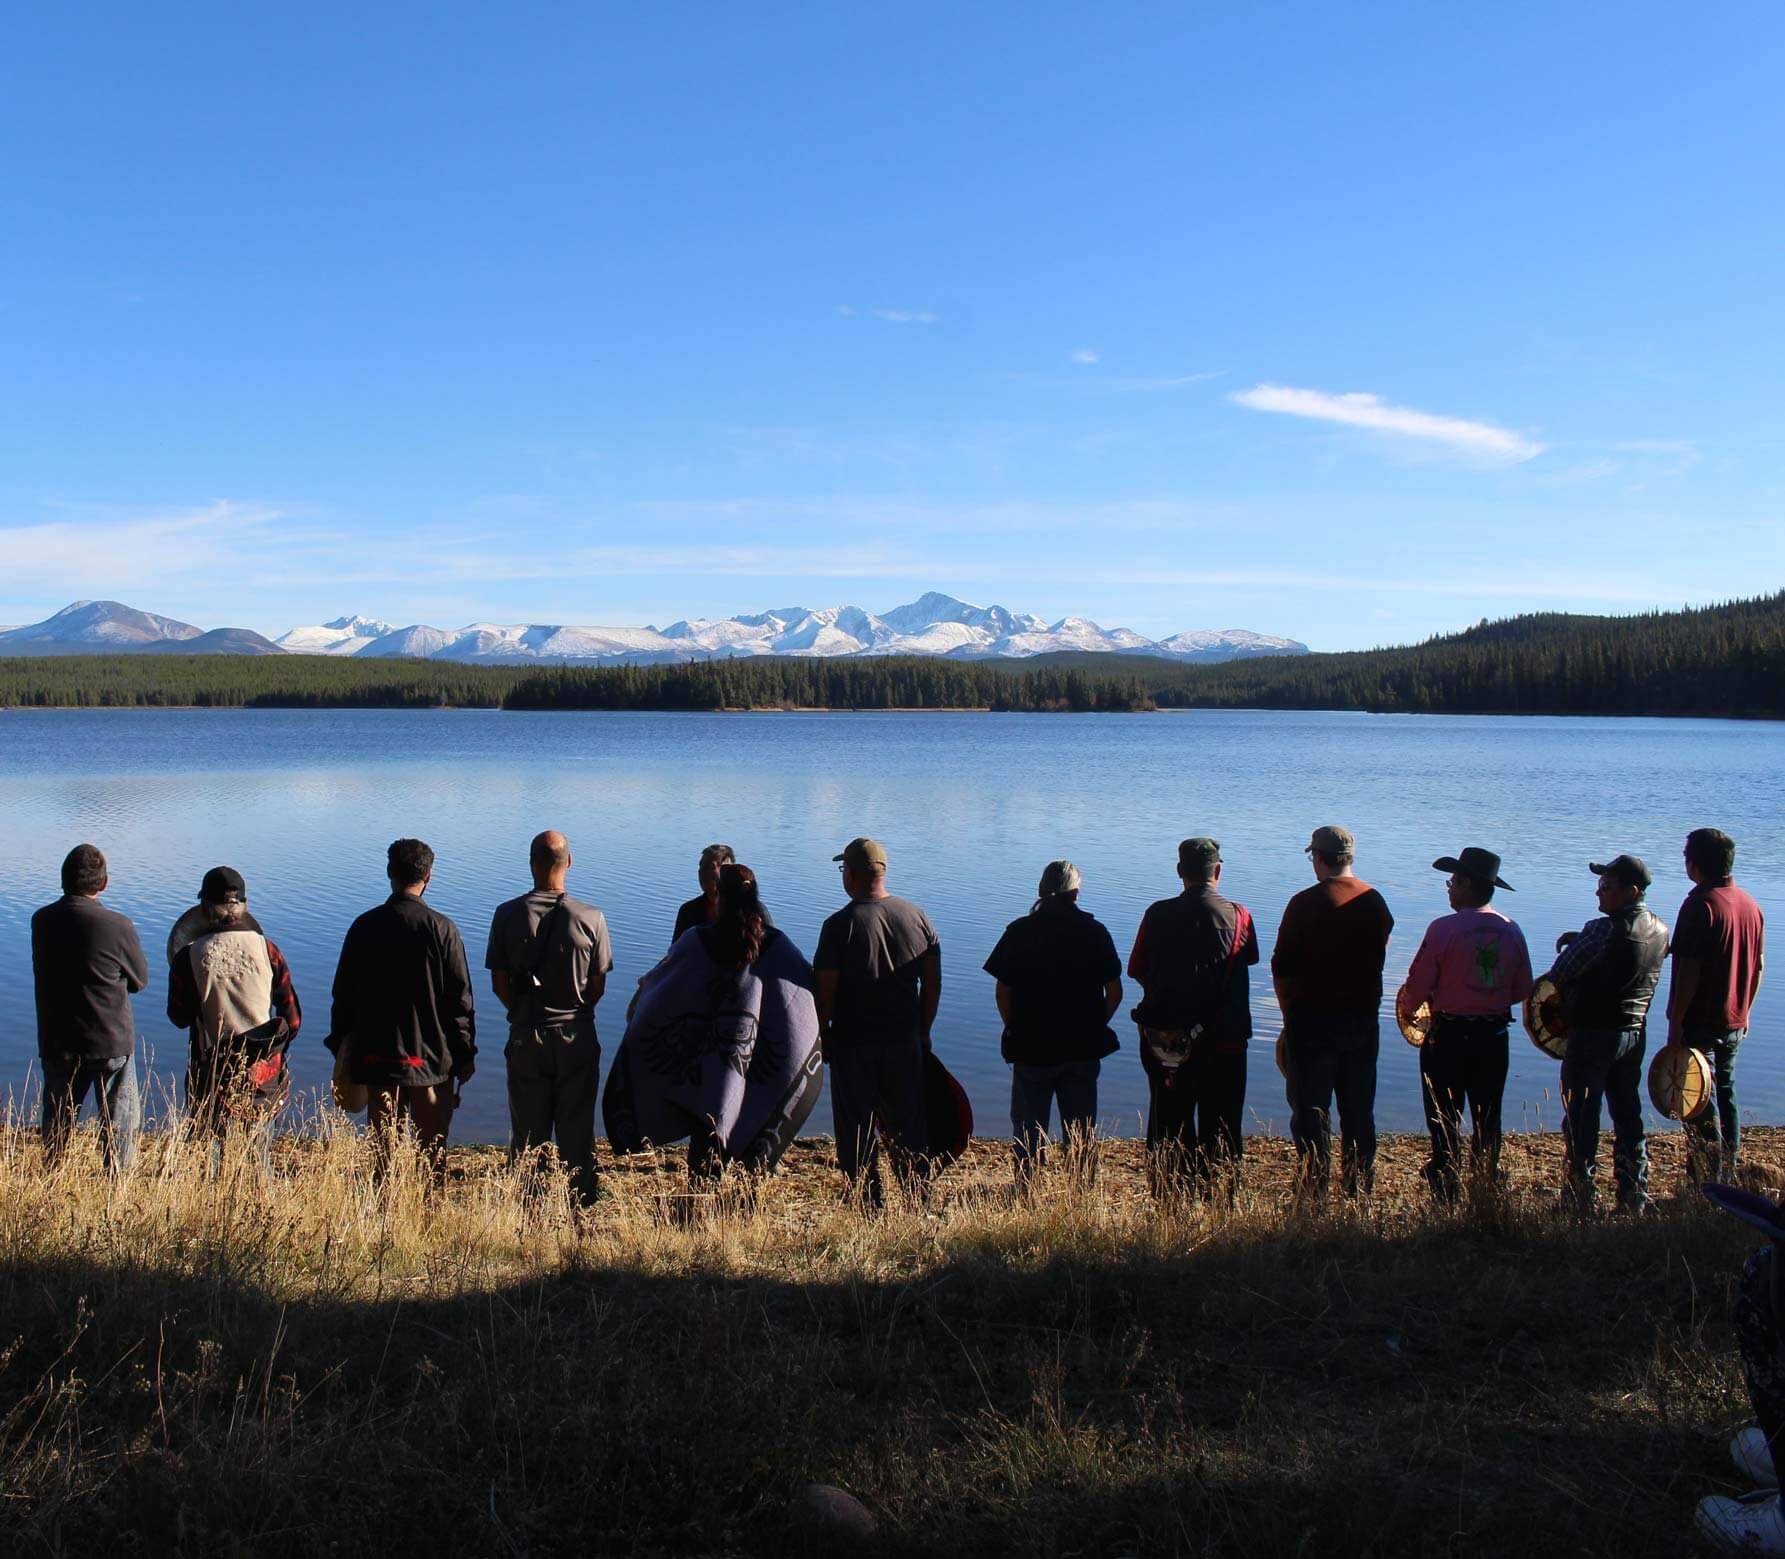 Tsilhqot'in community members at Teztan Biny (Fish Lake). (Tsilhqot'in National Government)